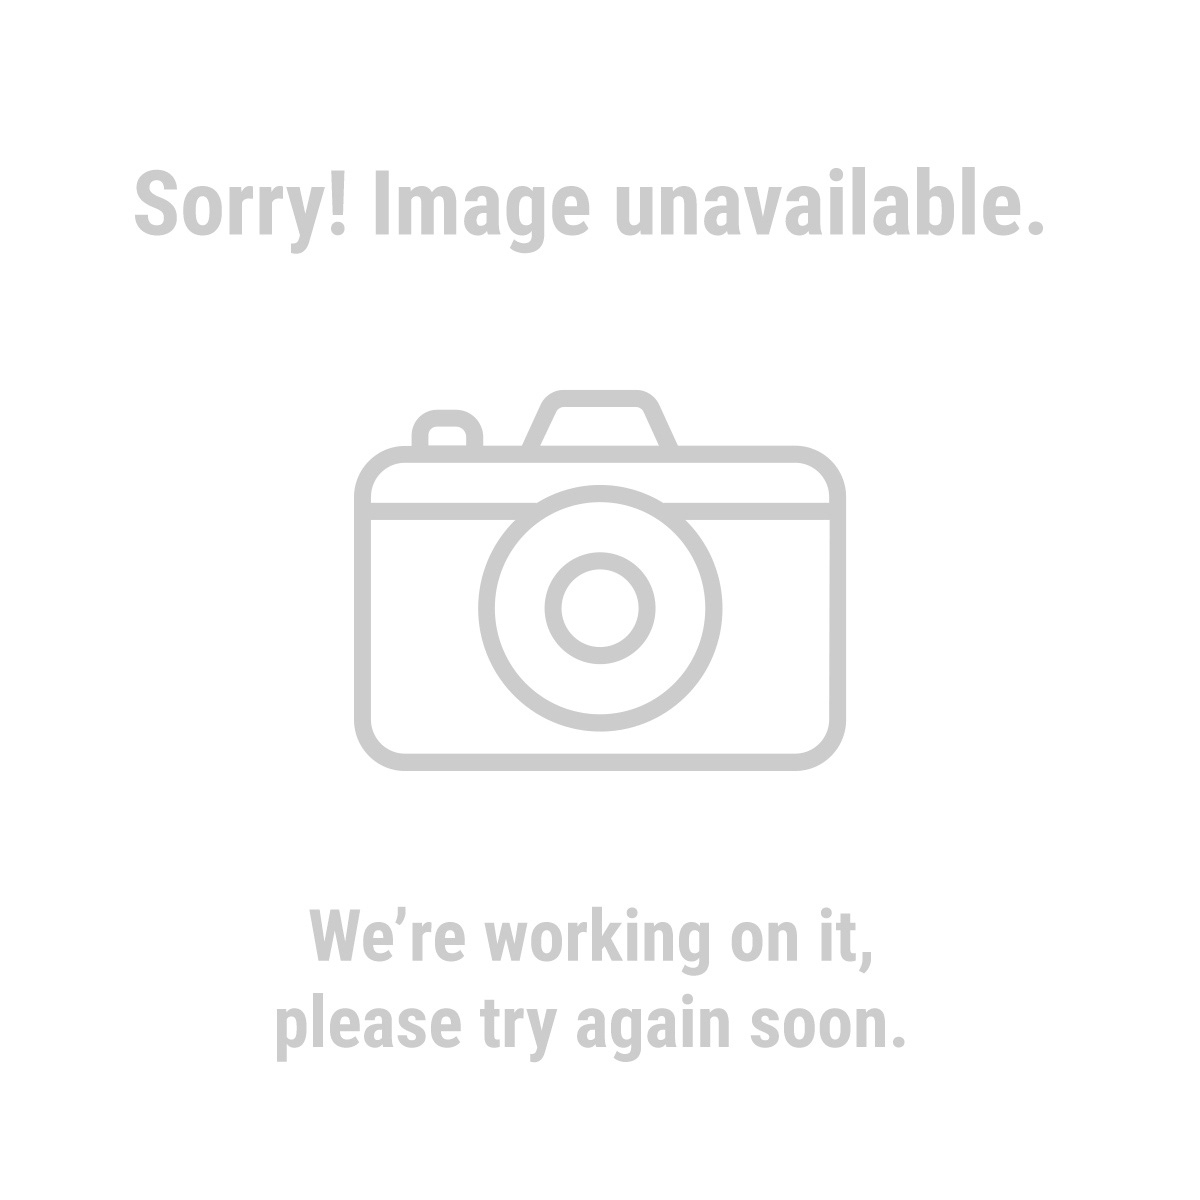 Storehouse 67551 80 Piece Drywall Anchor and Screw Set